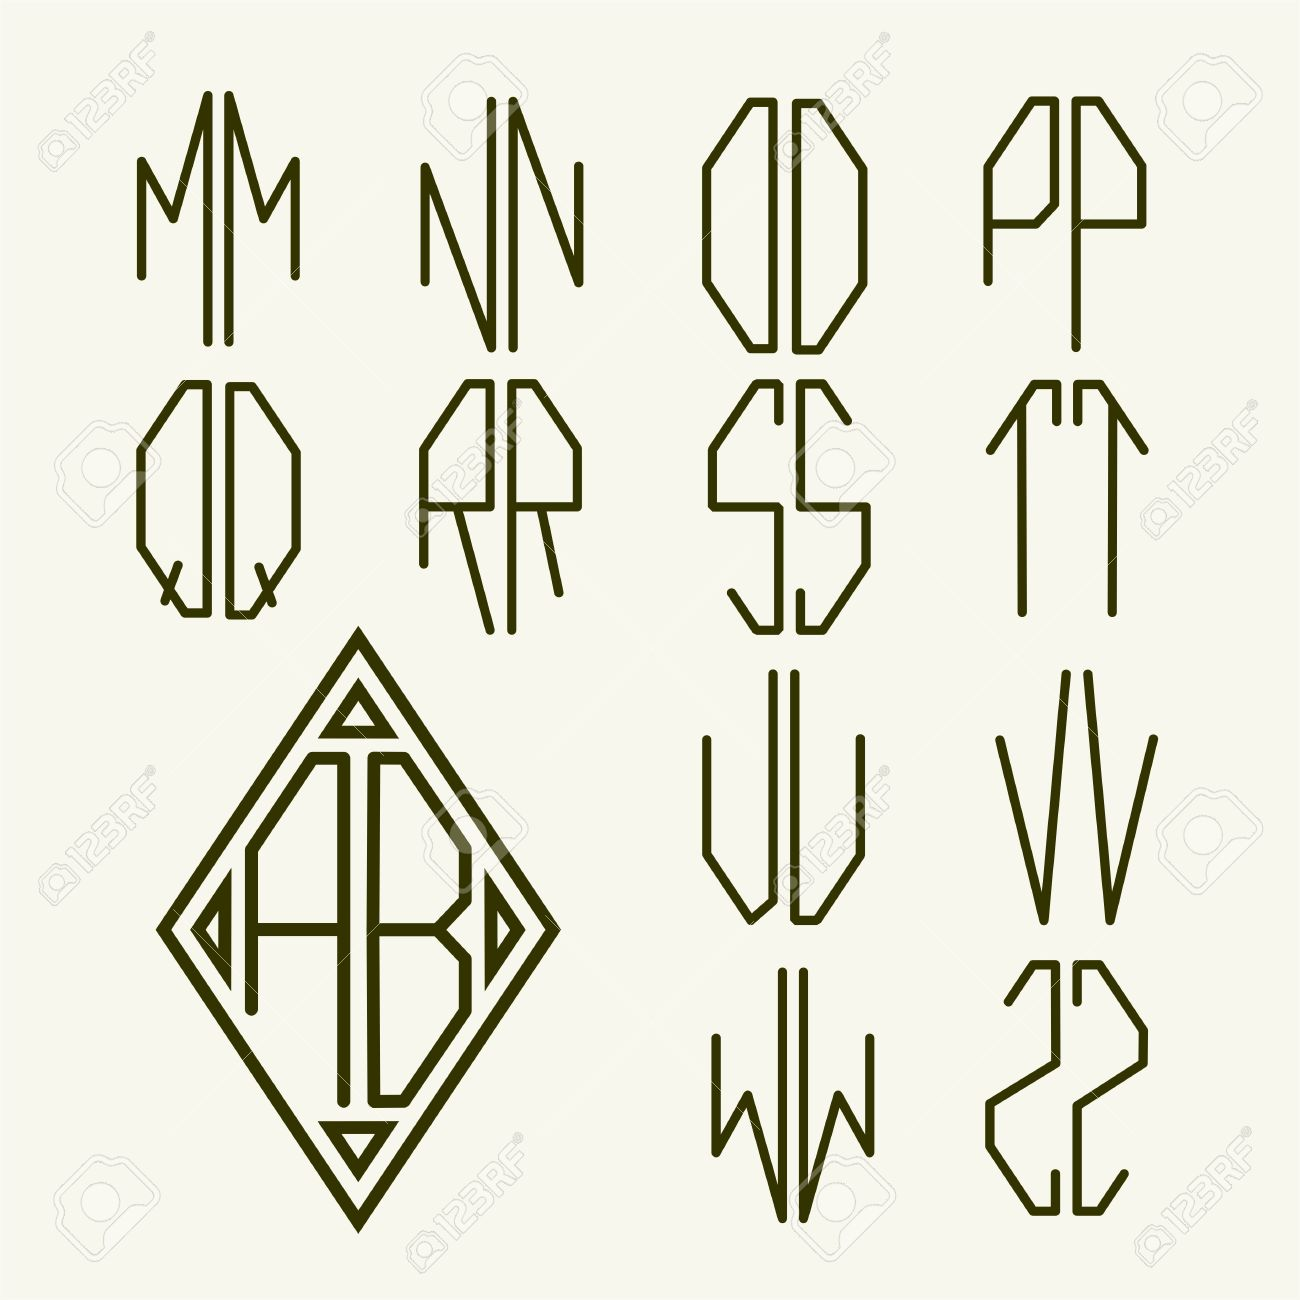 set 2 of templates of letters to create a two letter monogram inscribed in rhombus